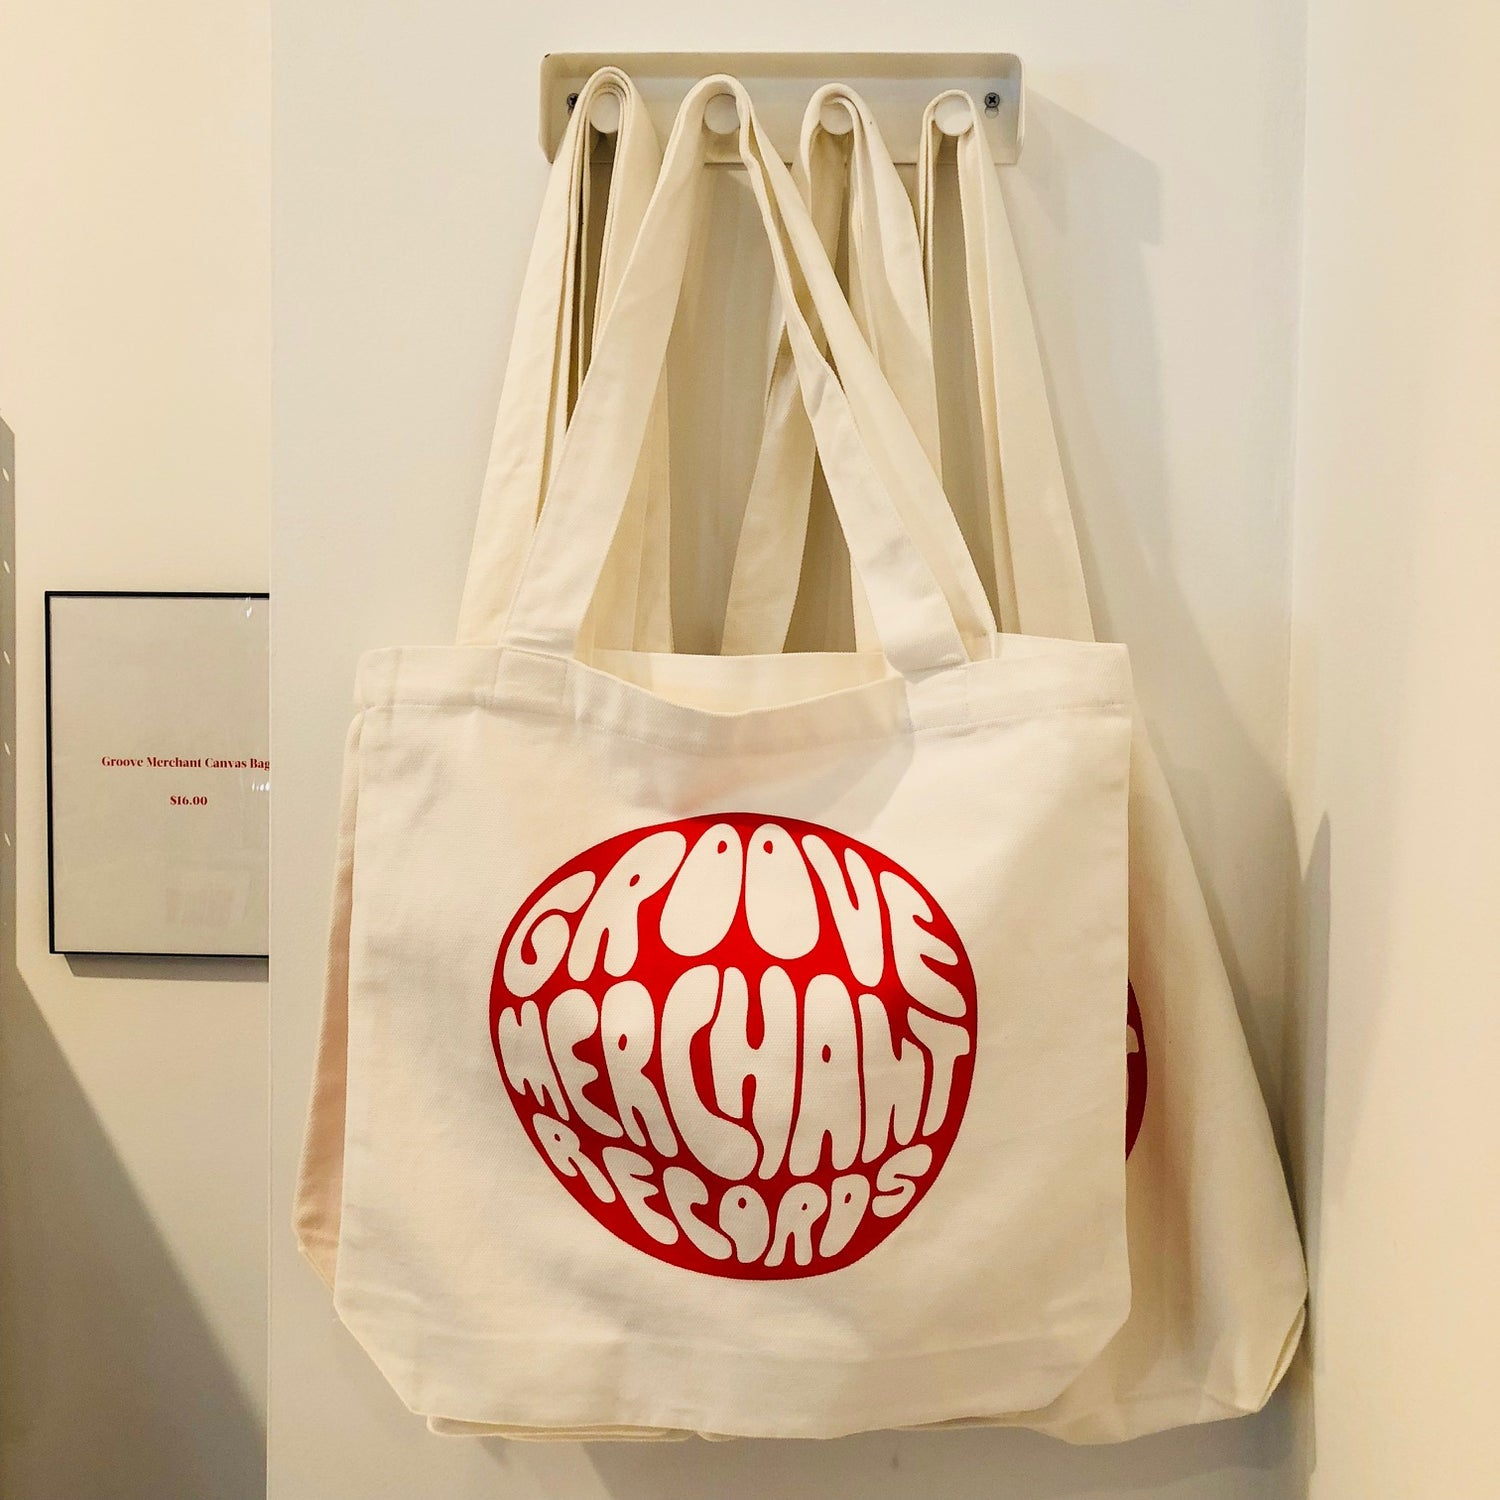 Groove Merchant Records Tote Bag